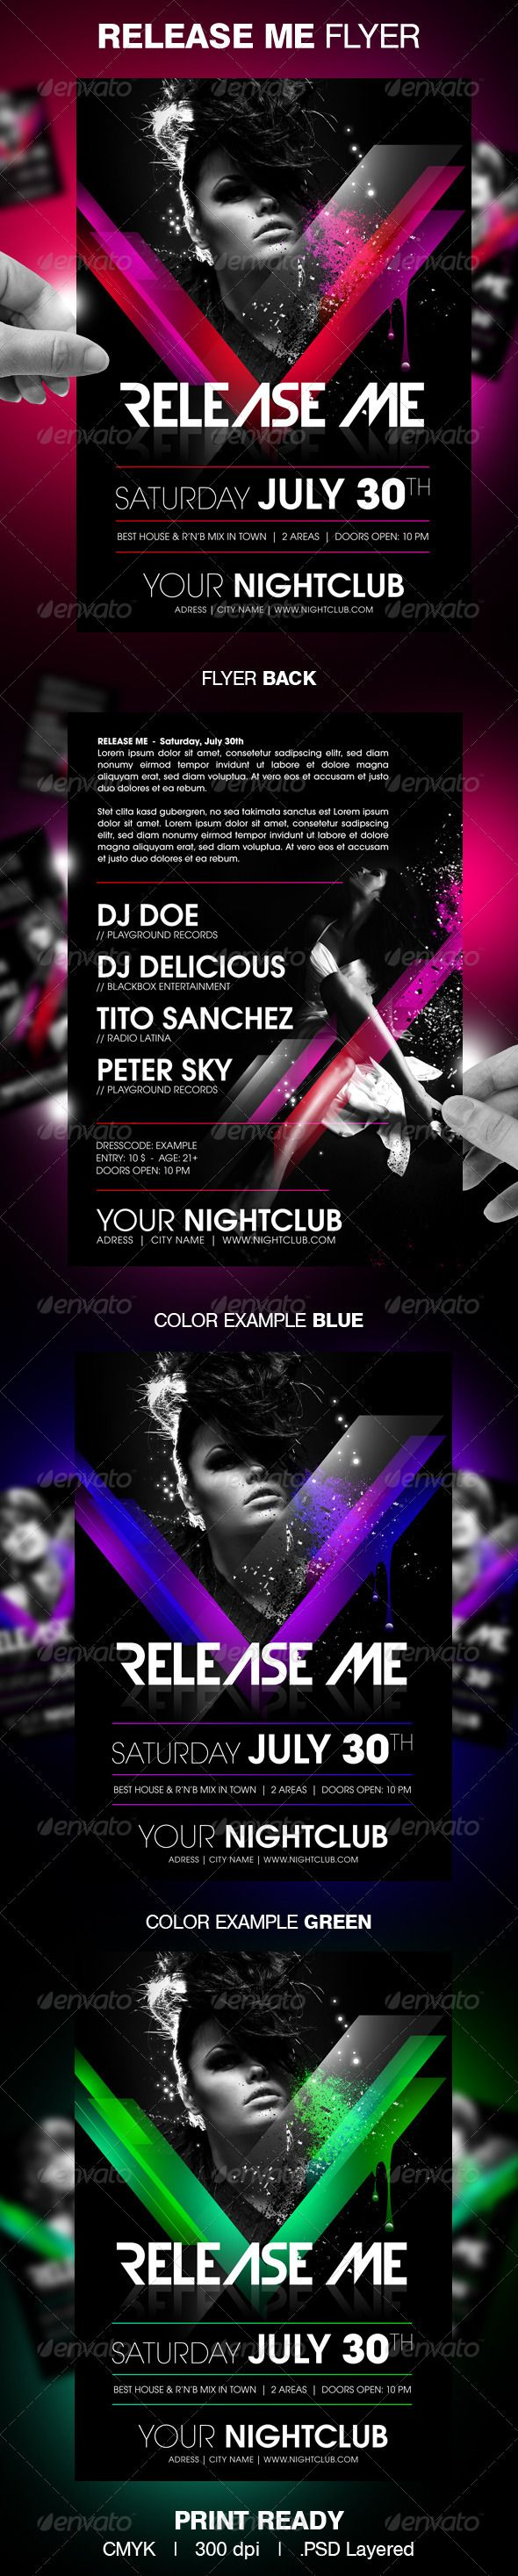 best images about flyer advertising nightclub release me party flyer